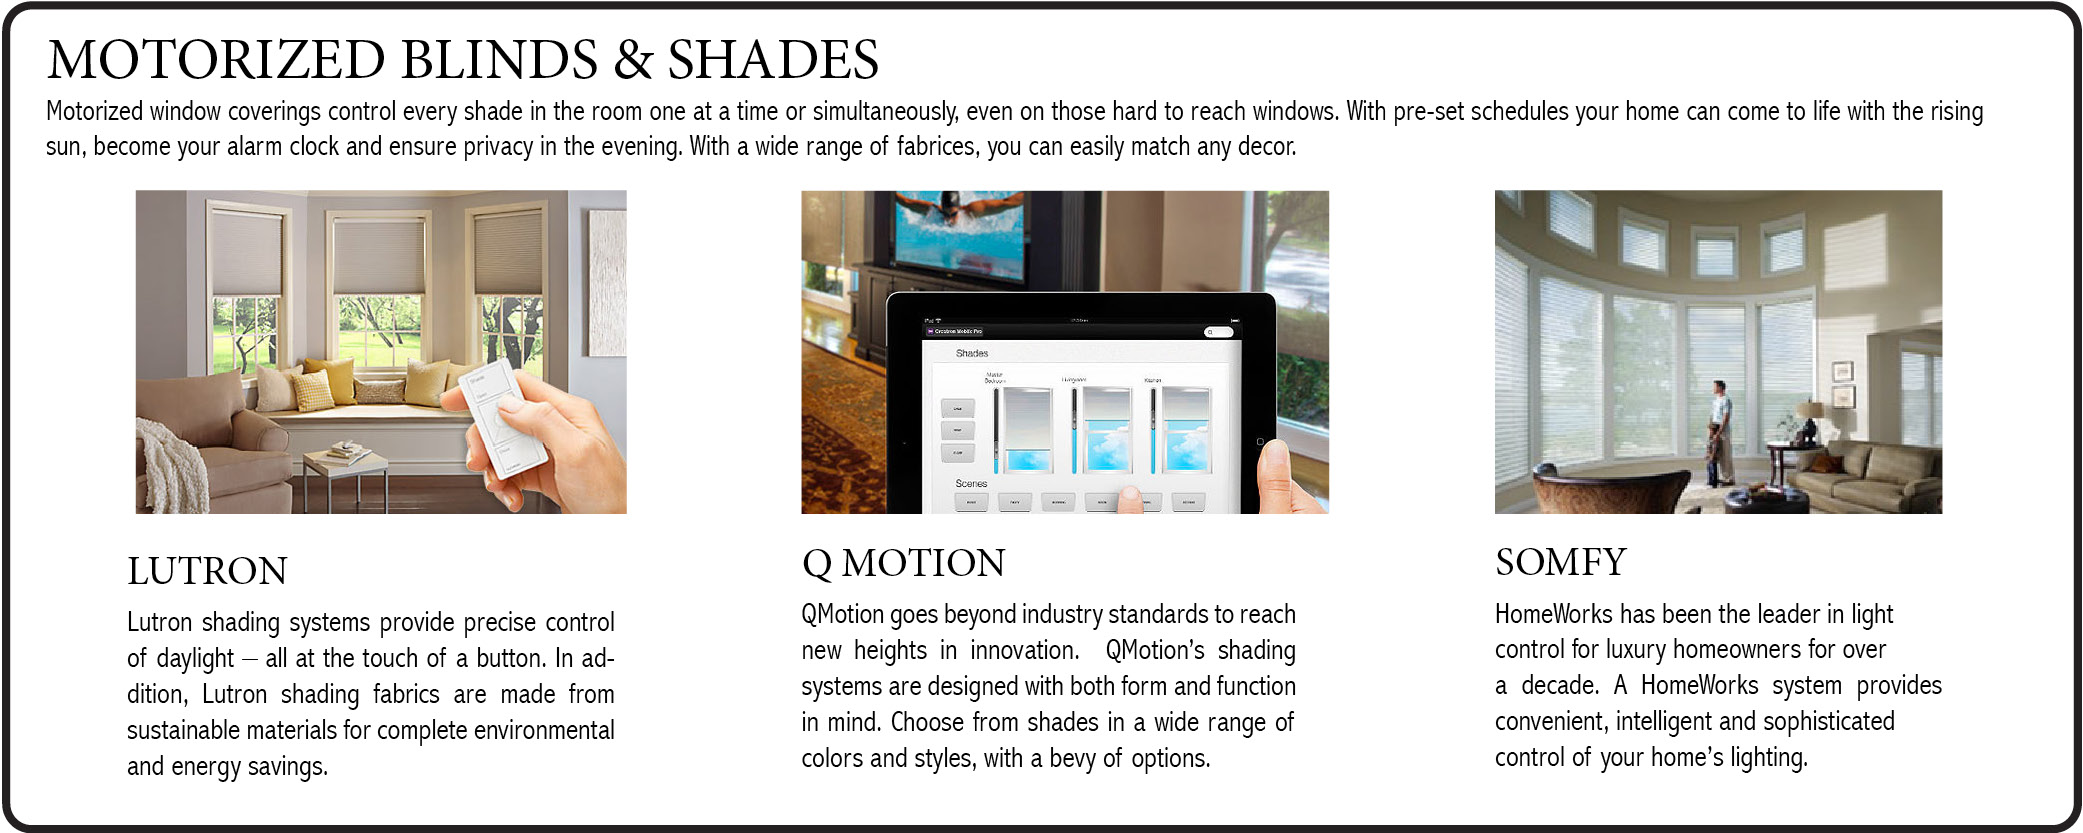 lutron-qmotion-somfy-motorized-shades-blinds-nj-hoboken-jersey-city